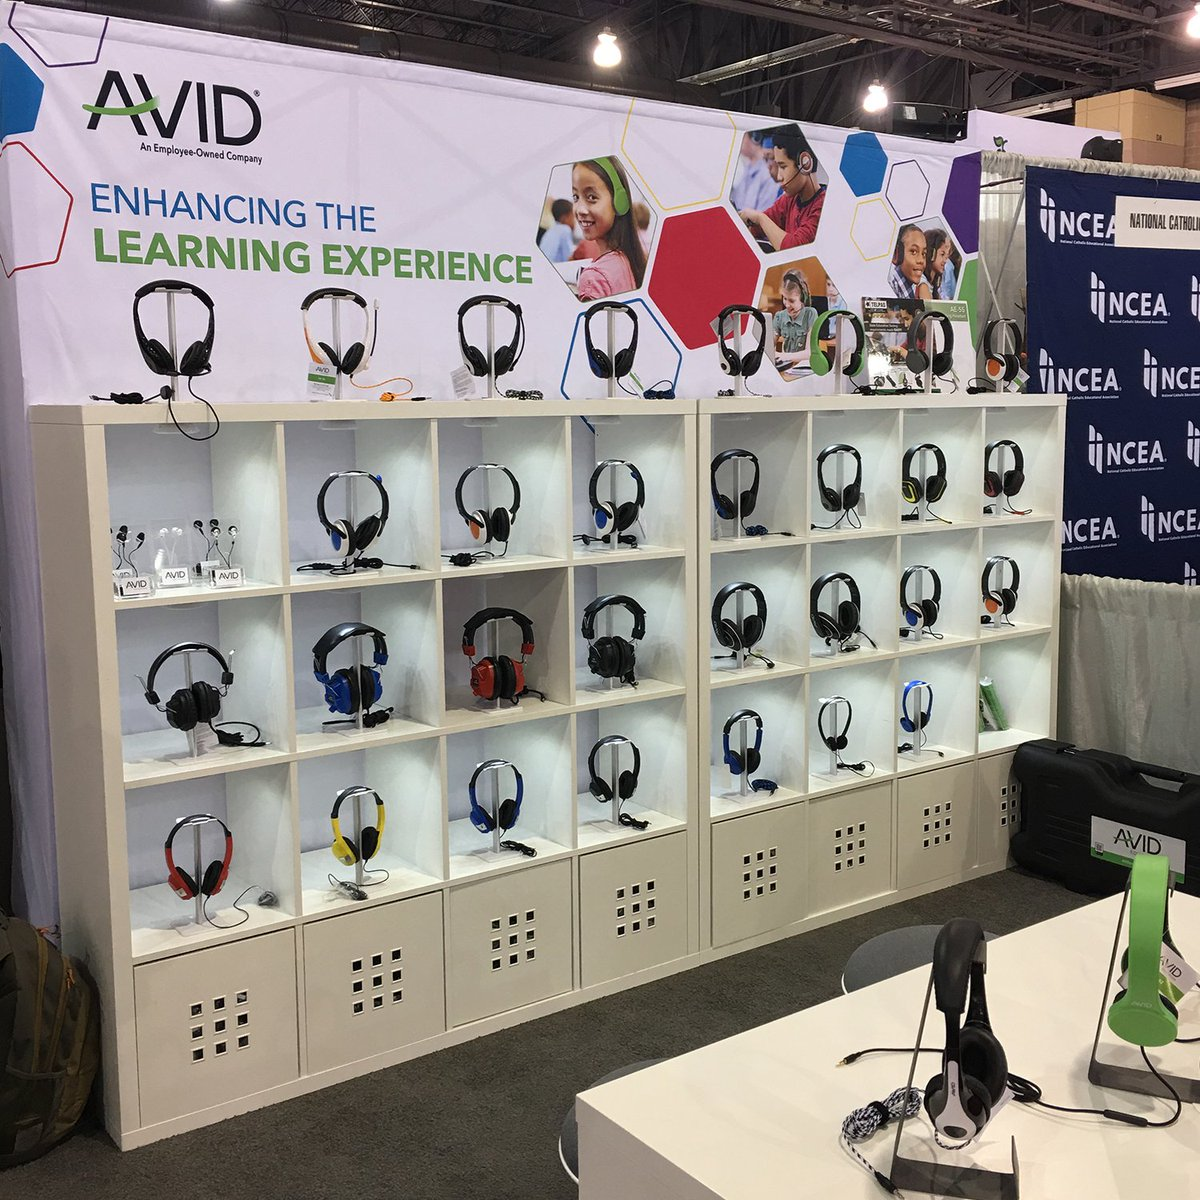 Day one @iste has commenced. Join us at booth 717 to see our latest #edtech solutions!  #avidheadphones #avideducation #iste2019 #iste19